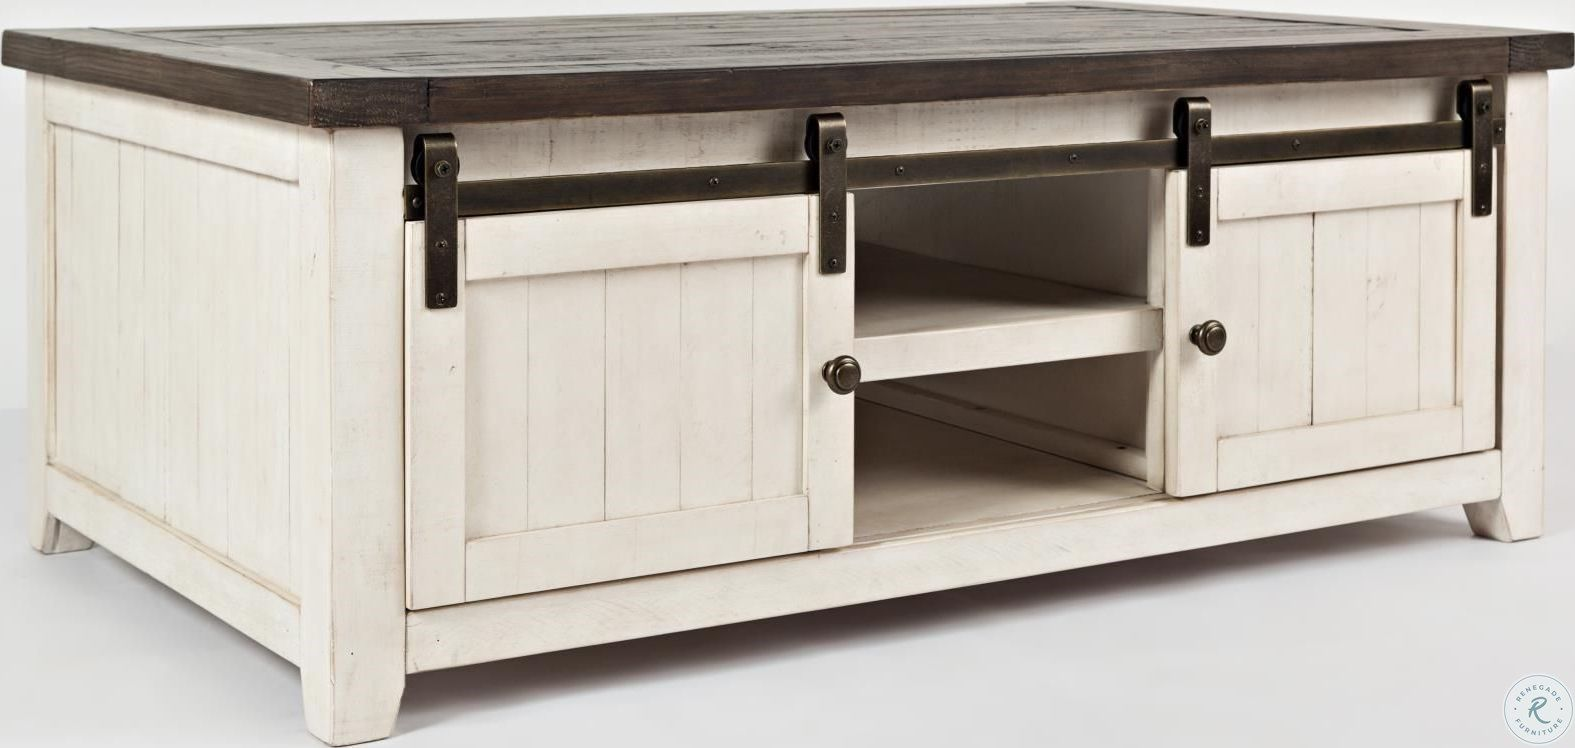 Parisian Marketplace Two Tone Heathered Brownstone Round Cocktail Table Door Coffee Tables Coffee Table White Coffee Table [ 748 x 1575 Pixel ]